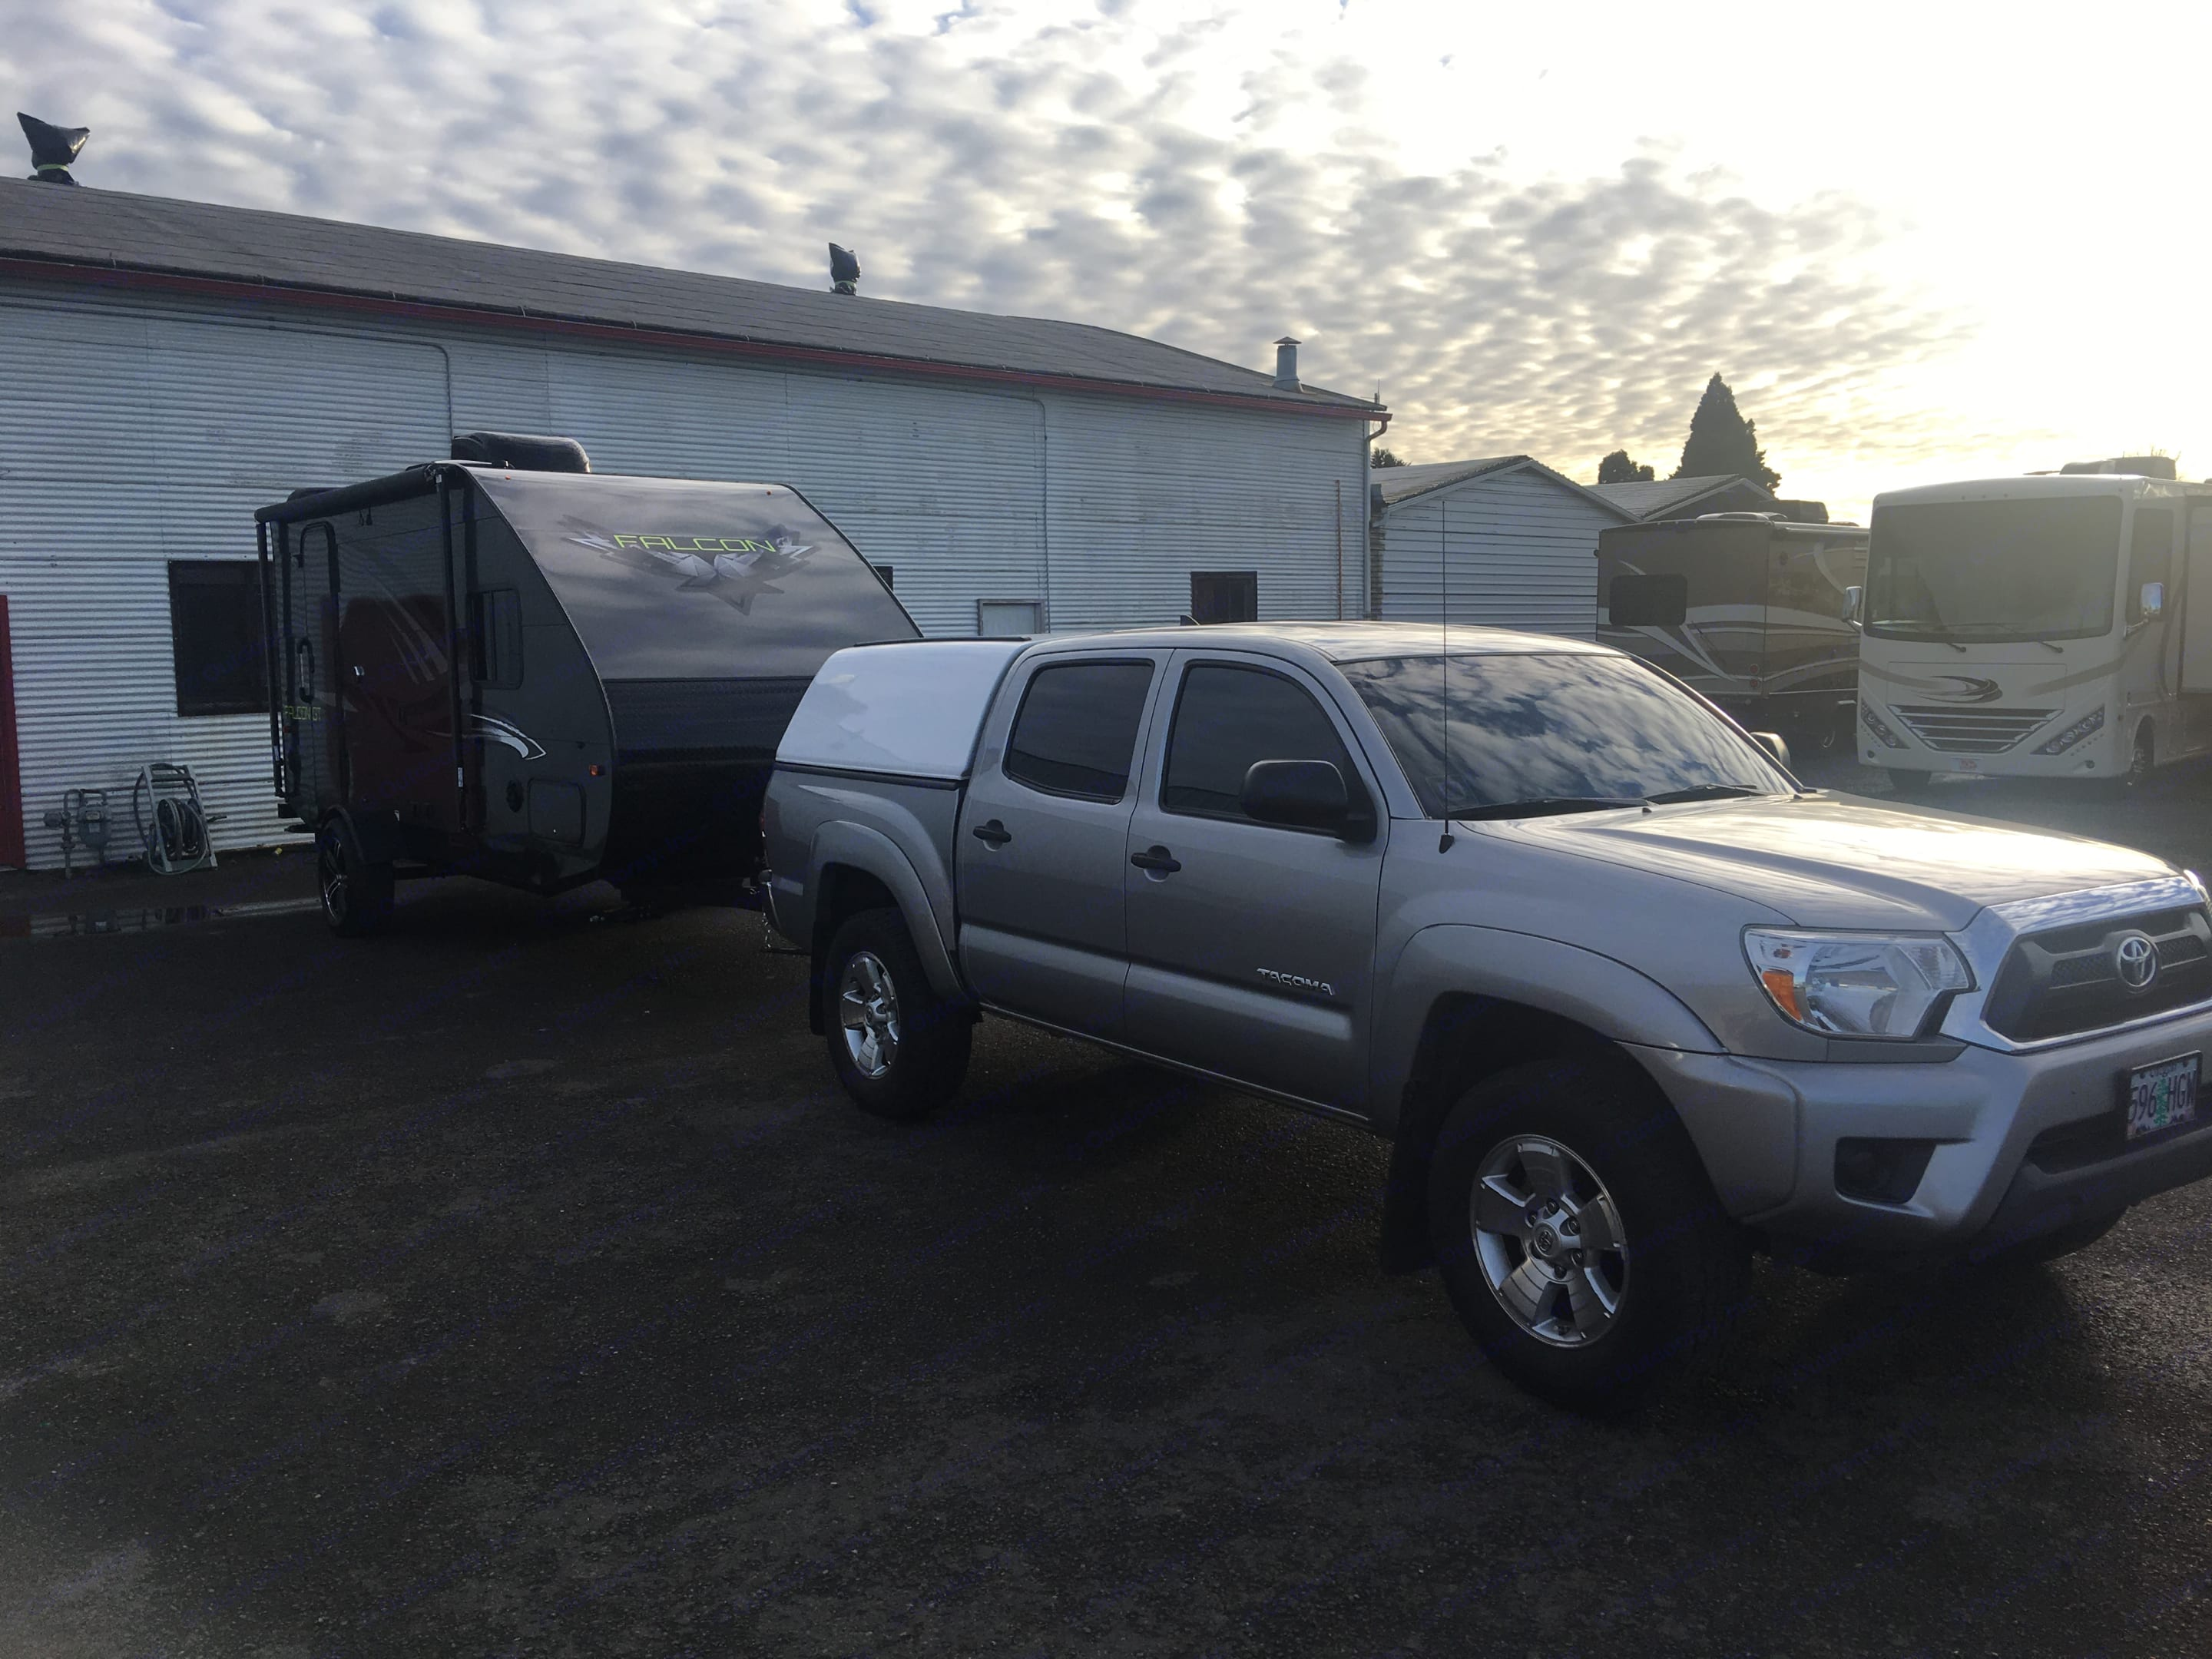 I tow with a 4 cylinder Toyota Tacoma prerunner and it handles like a champ. Travel Lite Other 2018